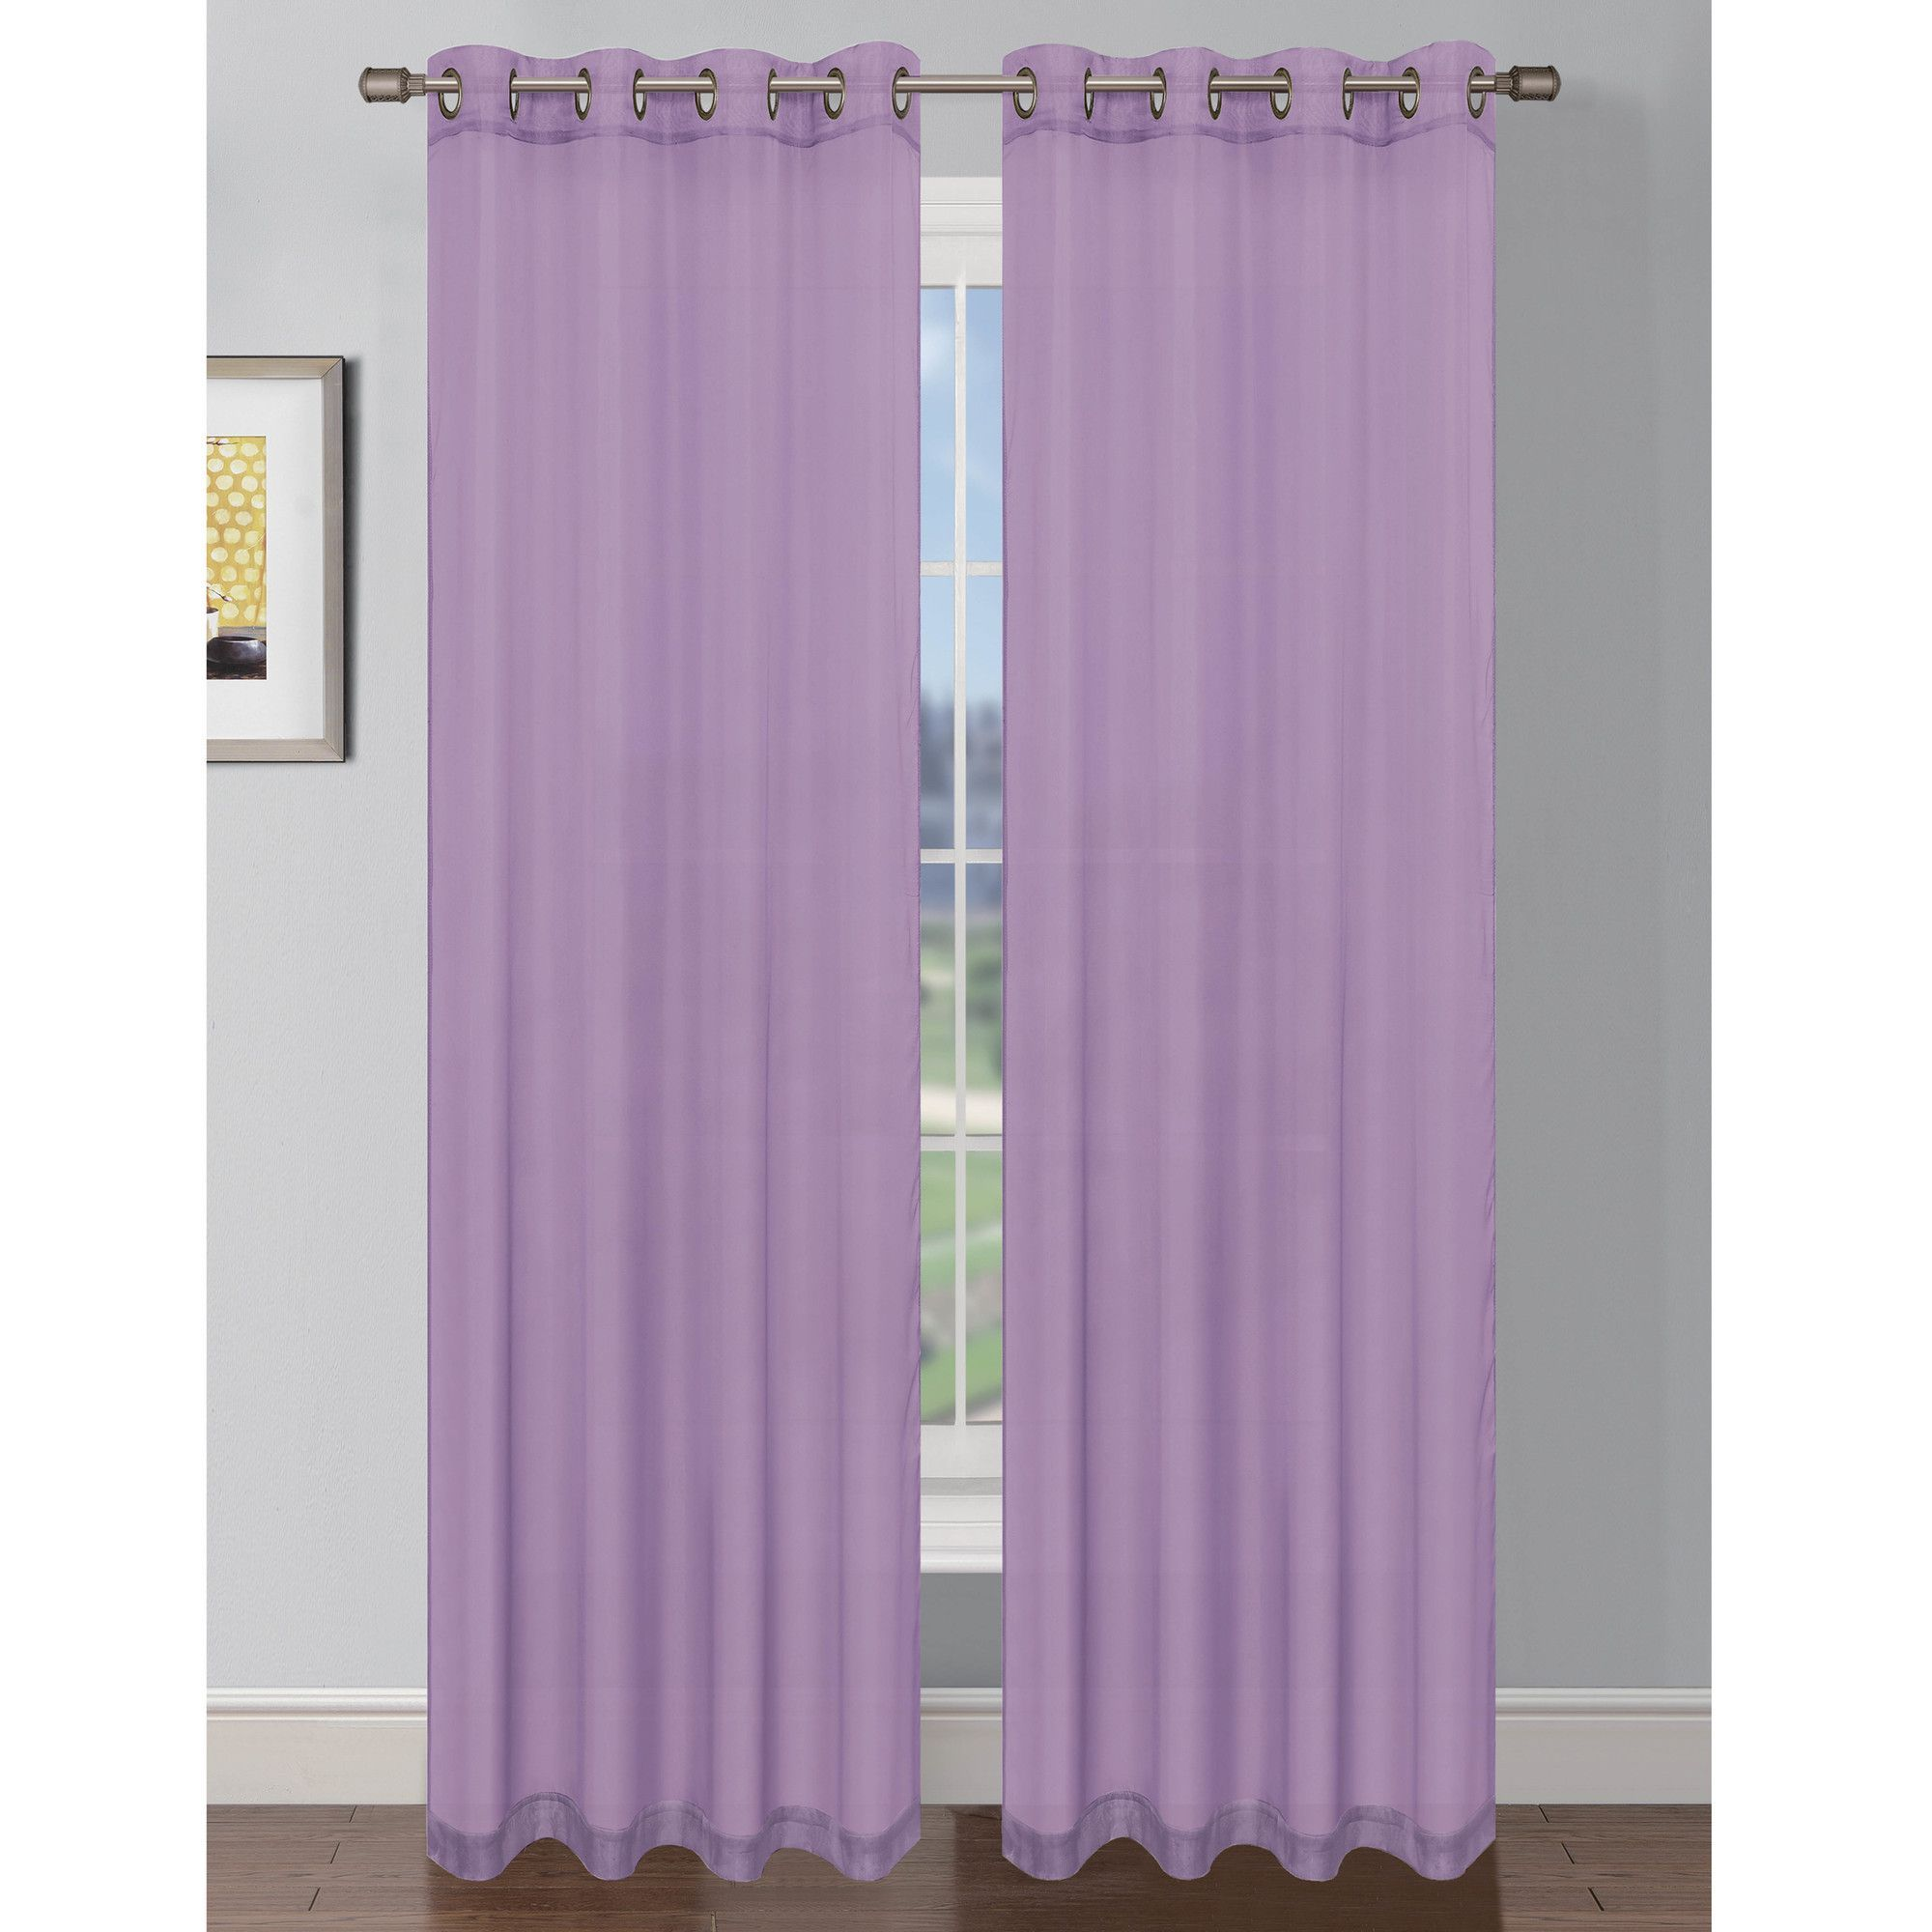 curtain islademargarita door class sliding patio for touch info doors big curtains of panels wide extra